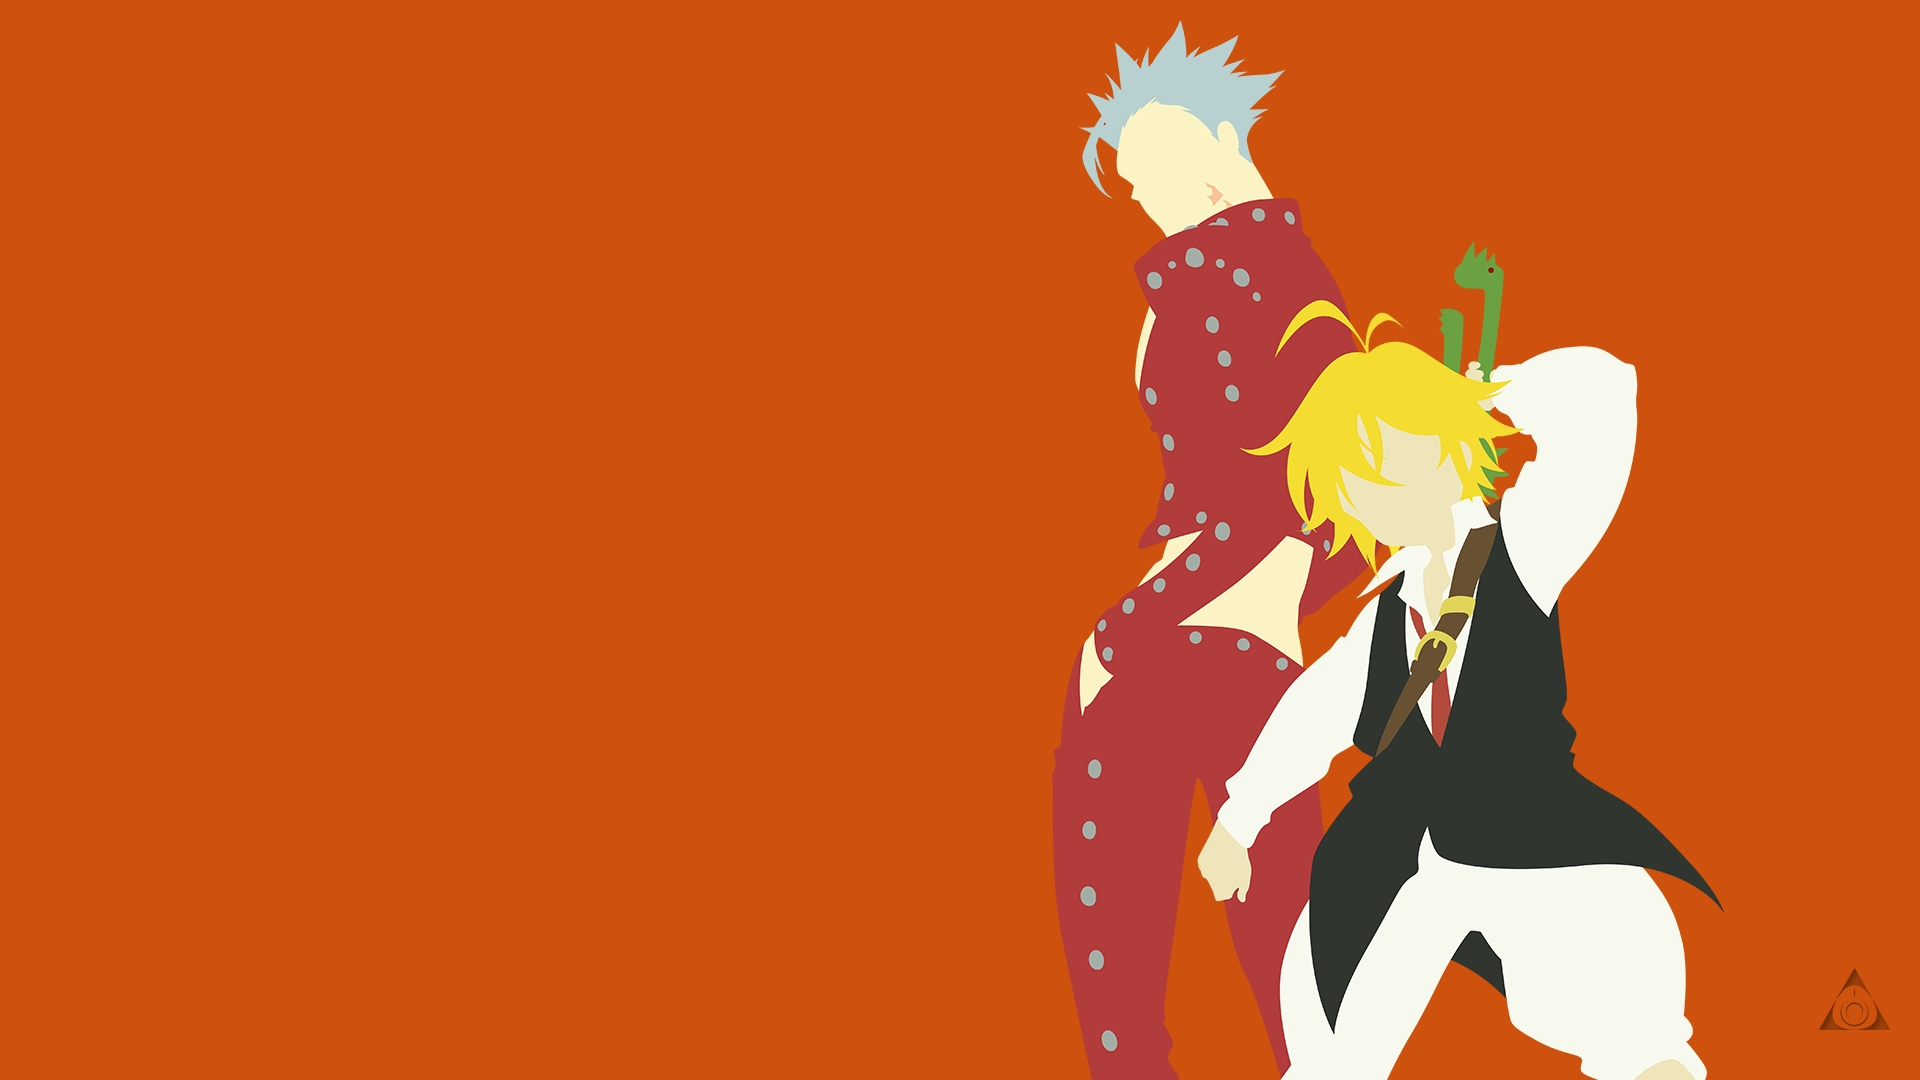 Meliodas And Ban From Seven Deadly Sins Anime Wallpaper Full Hd Id